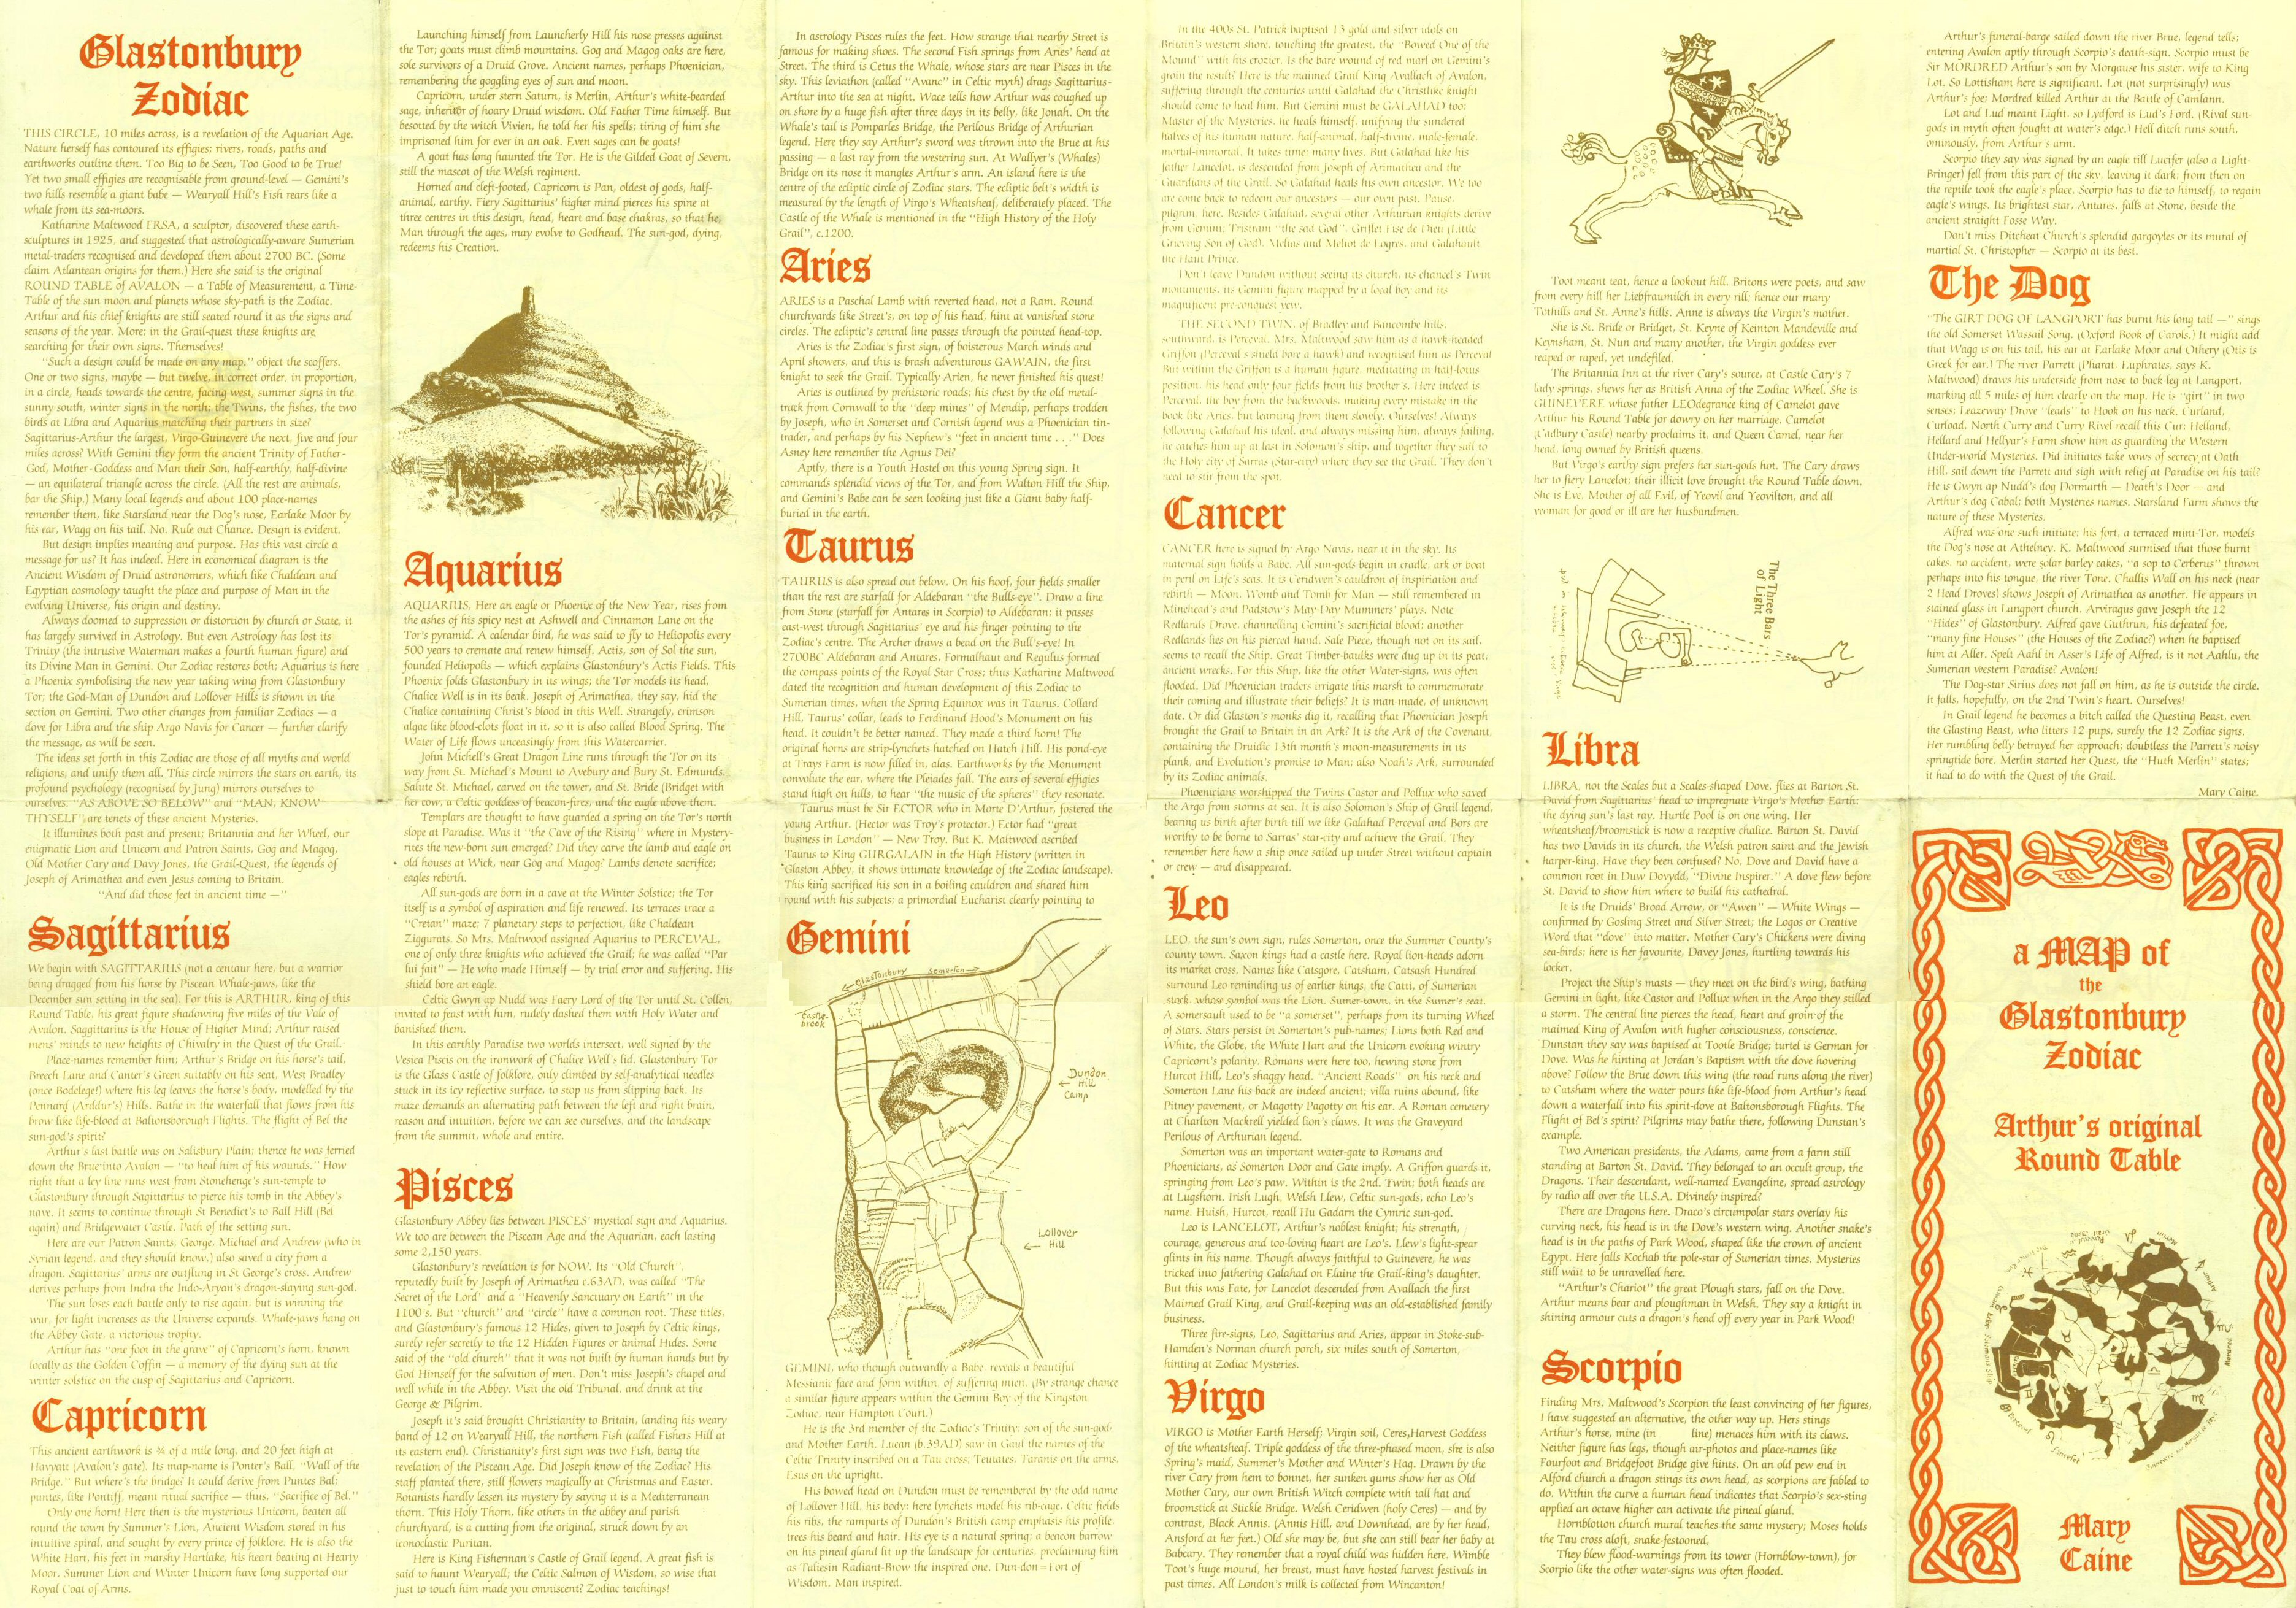 Zodiac Map on story map, skagen map, cat map, moon map, earth map, everest map, scorpius map, complete astrology map, astrology chart map, ancient greek astronomy map, zombie map, fire map, monkey map, titanic map, capitals of the world map, astrological sign map, constellation map, world war z map, azimuth map, flags of the world map,